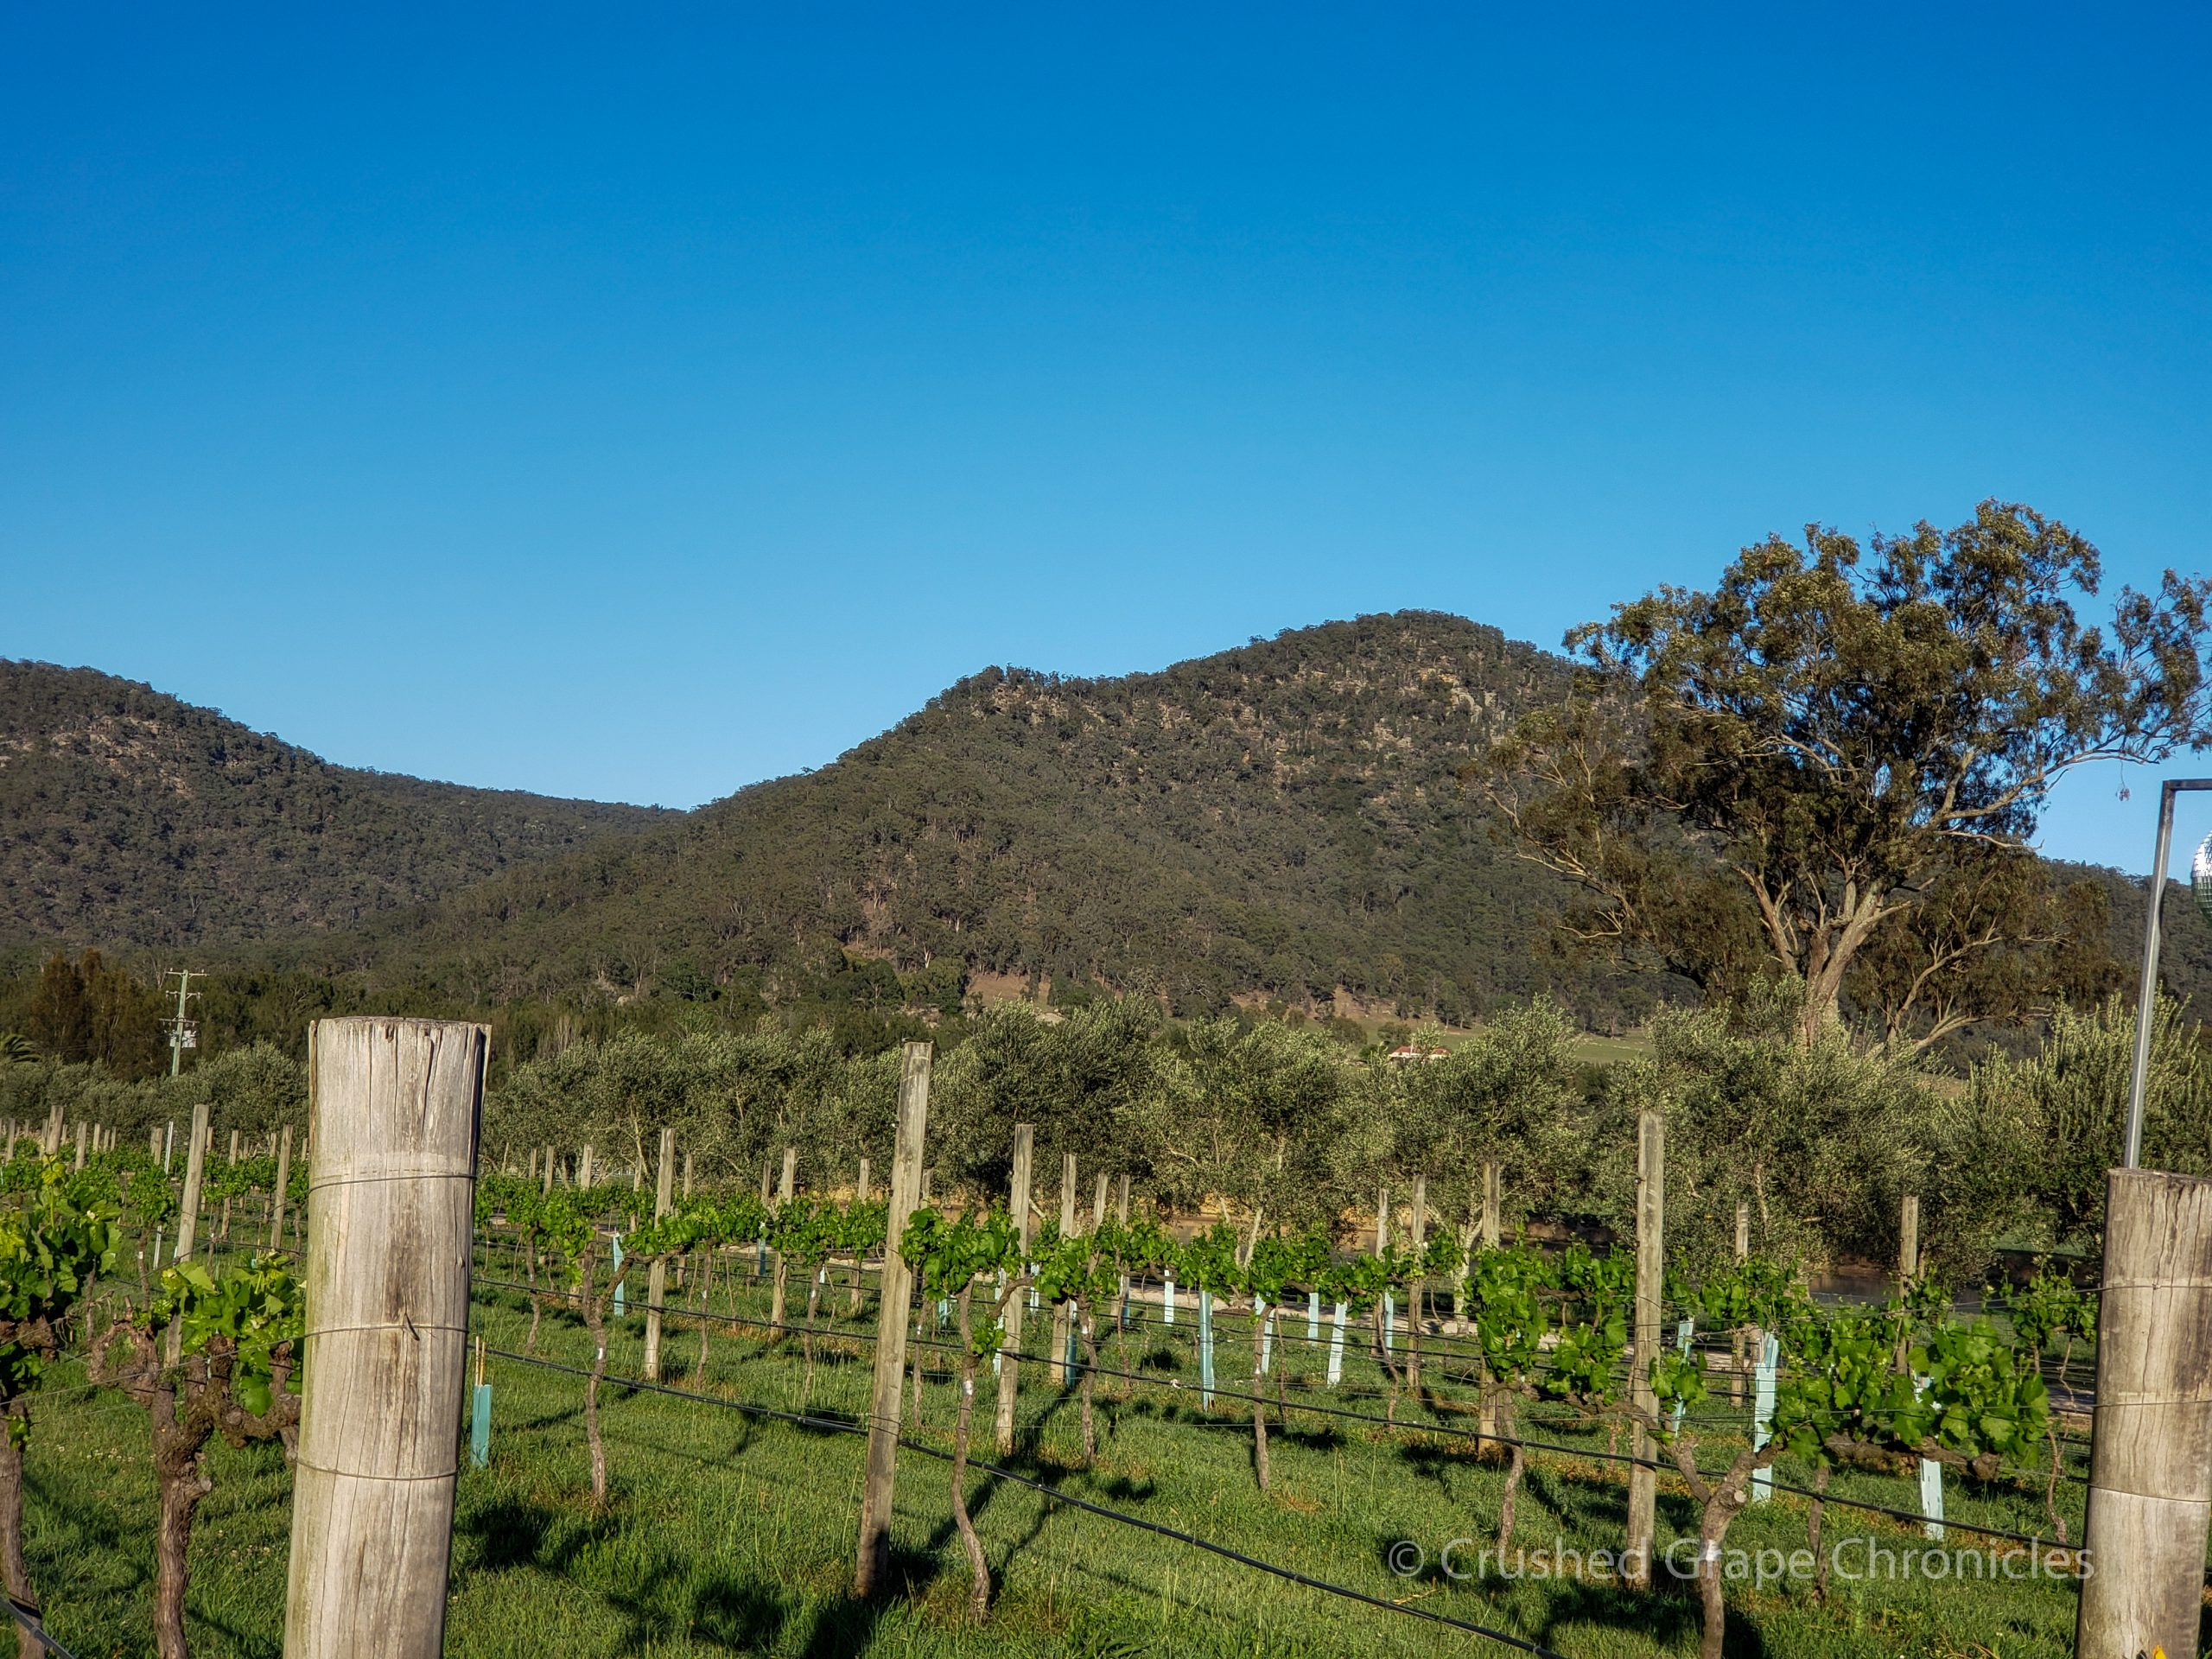 Krinklewood in Hunter Valley Australia 2018 Biodynamic Vineyard